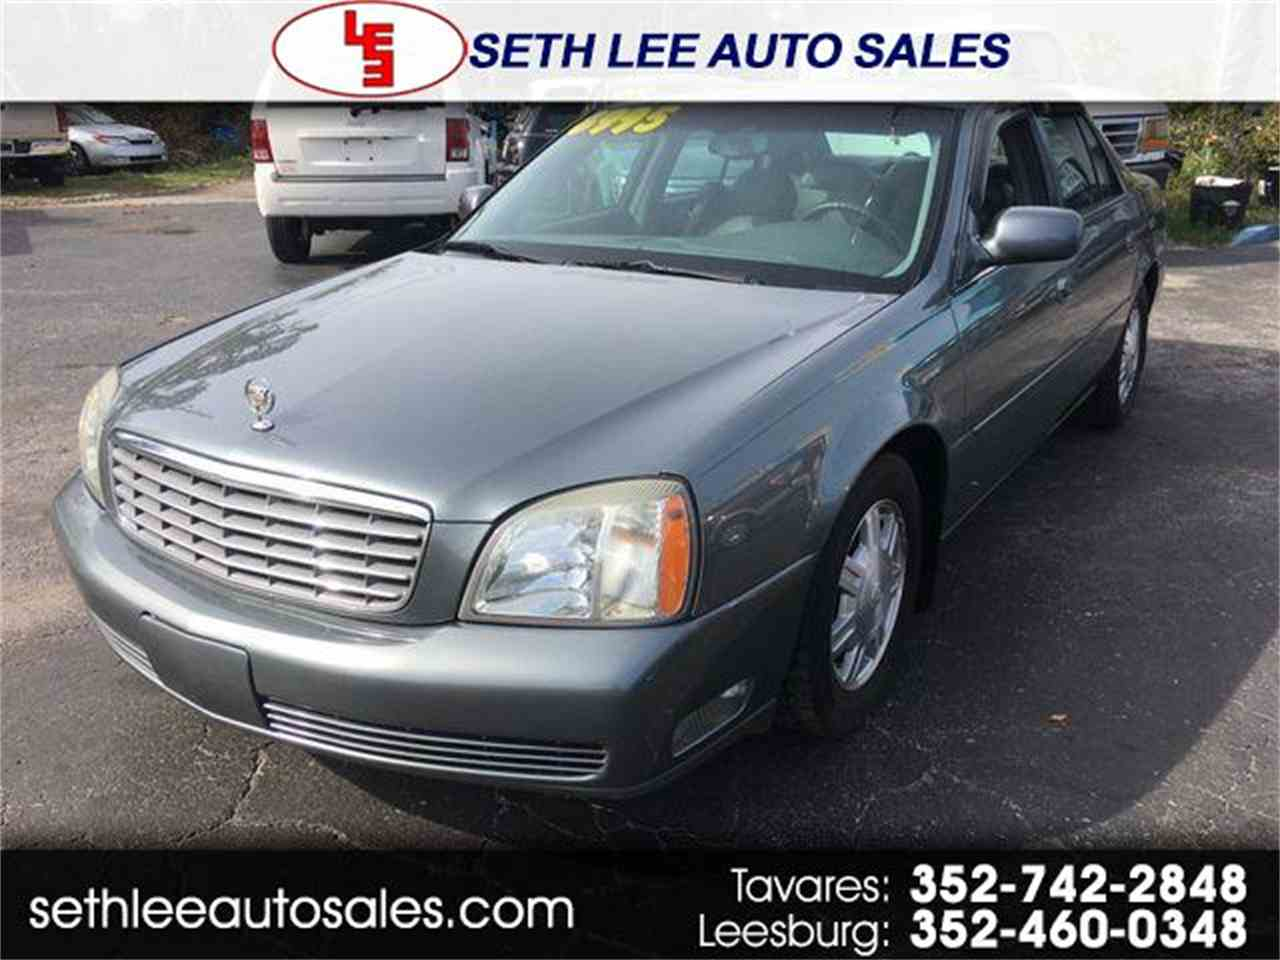 lemars new cadillac for s htm sale ia deville img dts in shop bob inventory bike